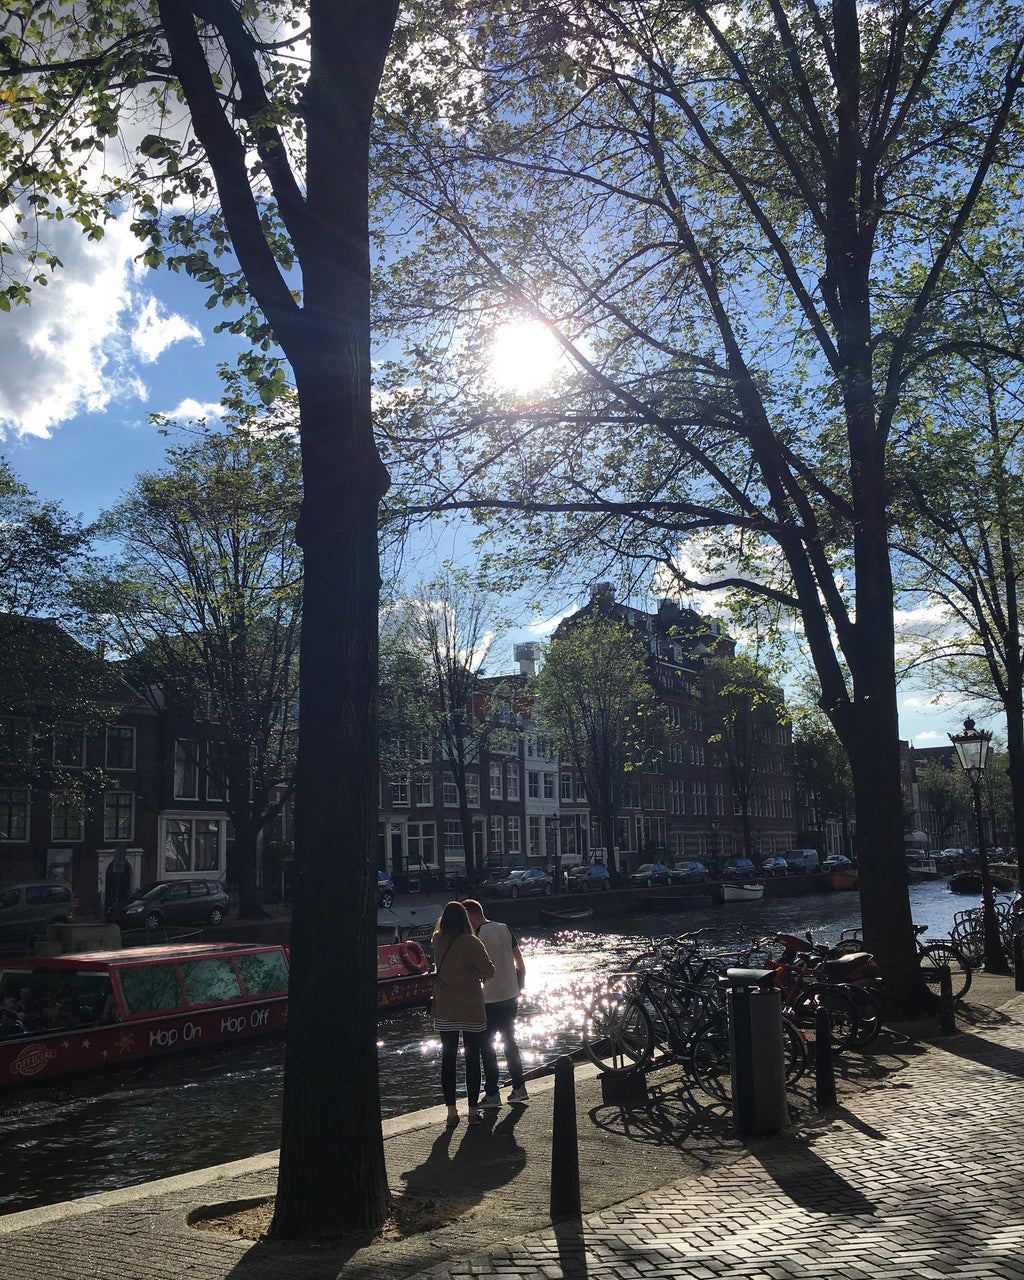 Hot 'Dam! A Quick Stop in Amsterdam.